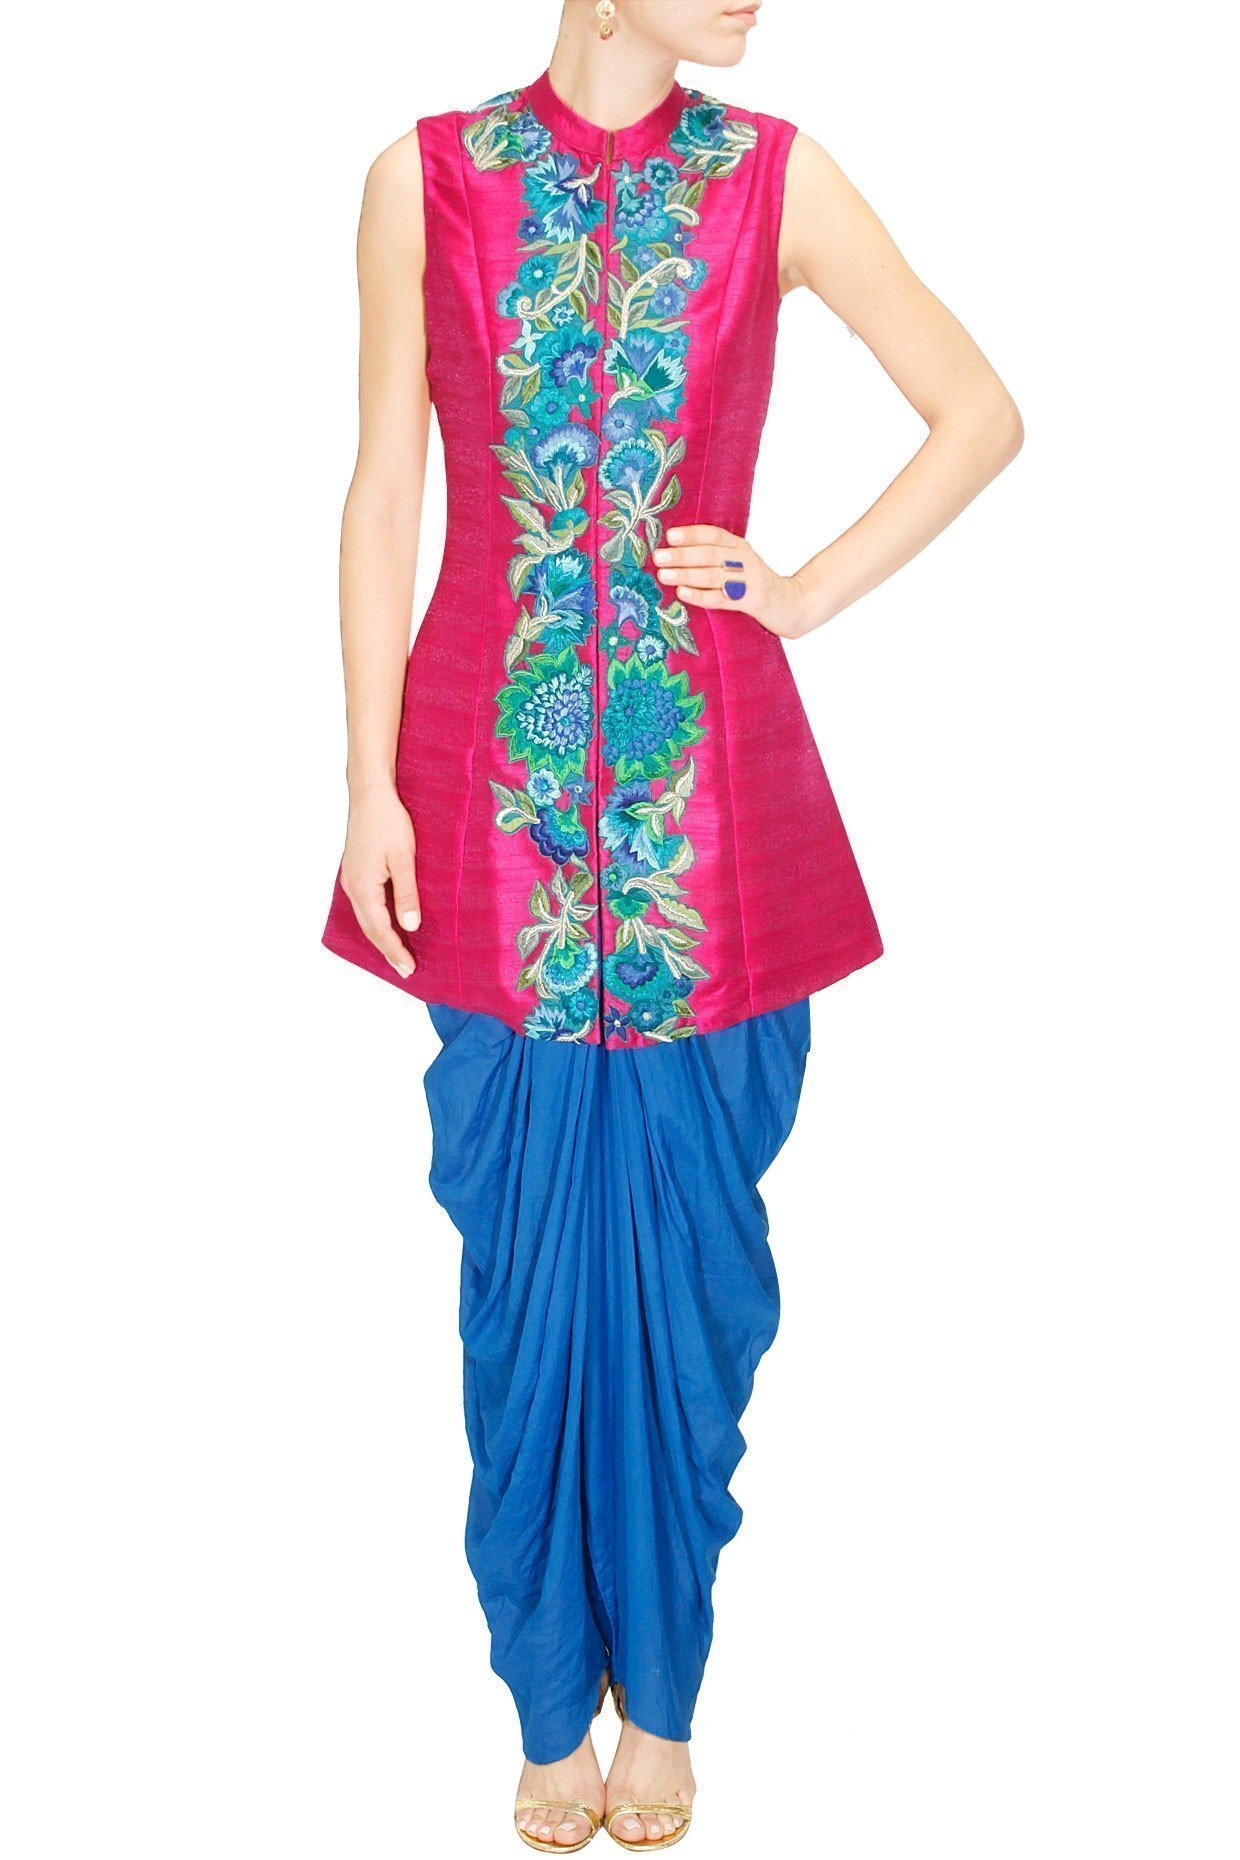 Magenta jacket with blue dhoti pants